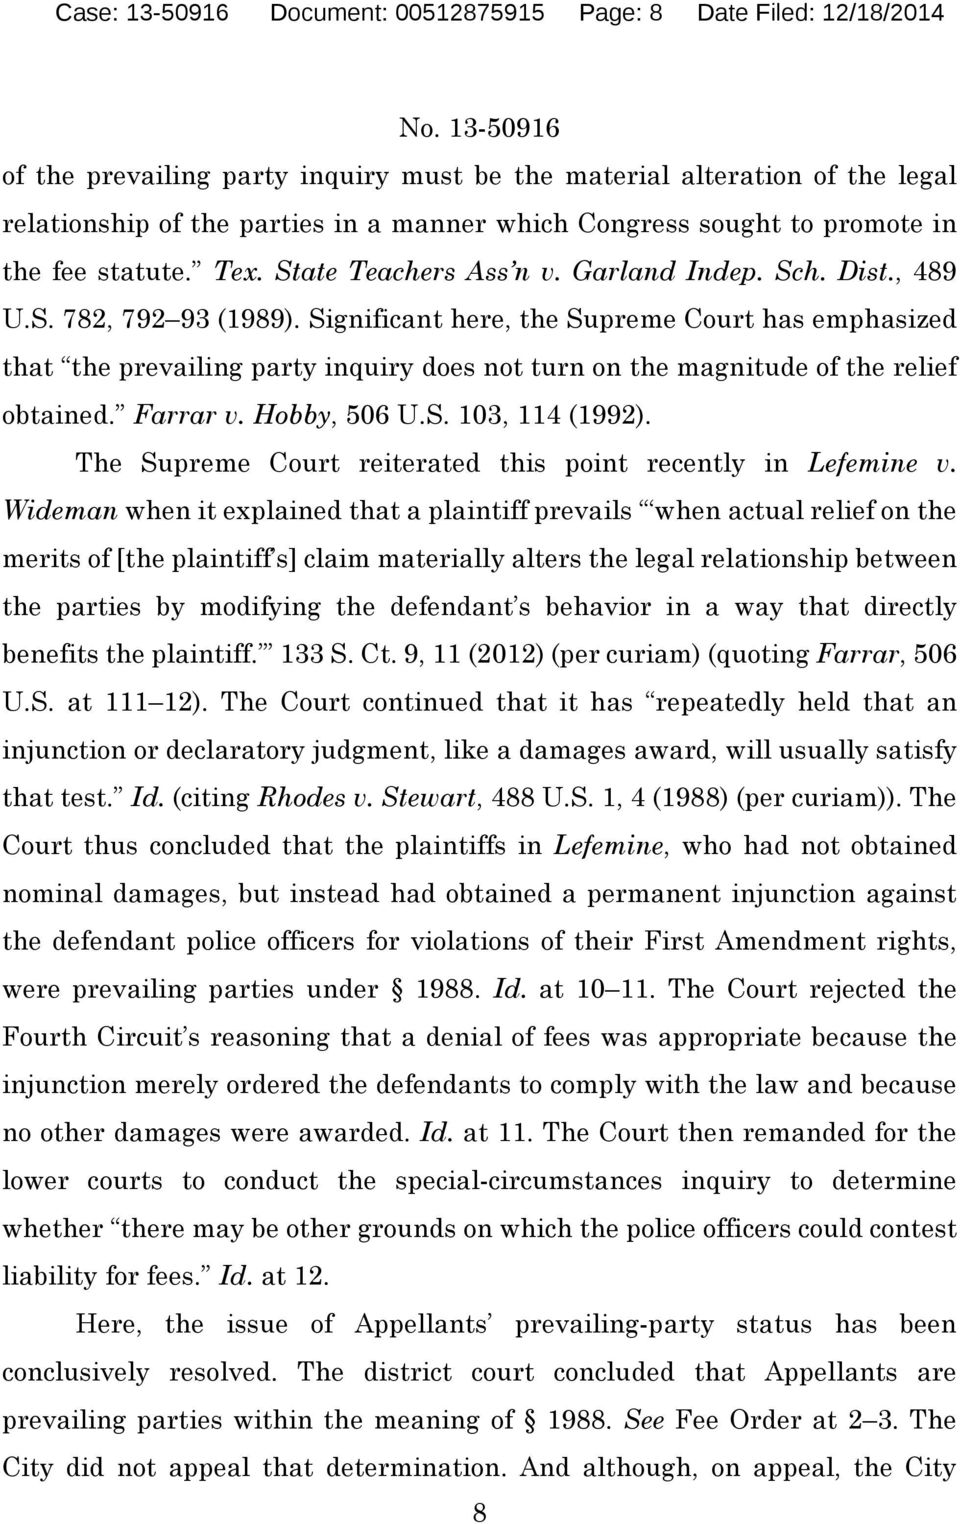 Significant here, the Supreme Court has emphasized that the prevailing party inquiry does not turn on the magnitude of the relief obtained. Farrar v. Hobby, 506 U.S. 103, 114 (1992).